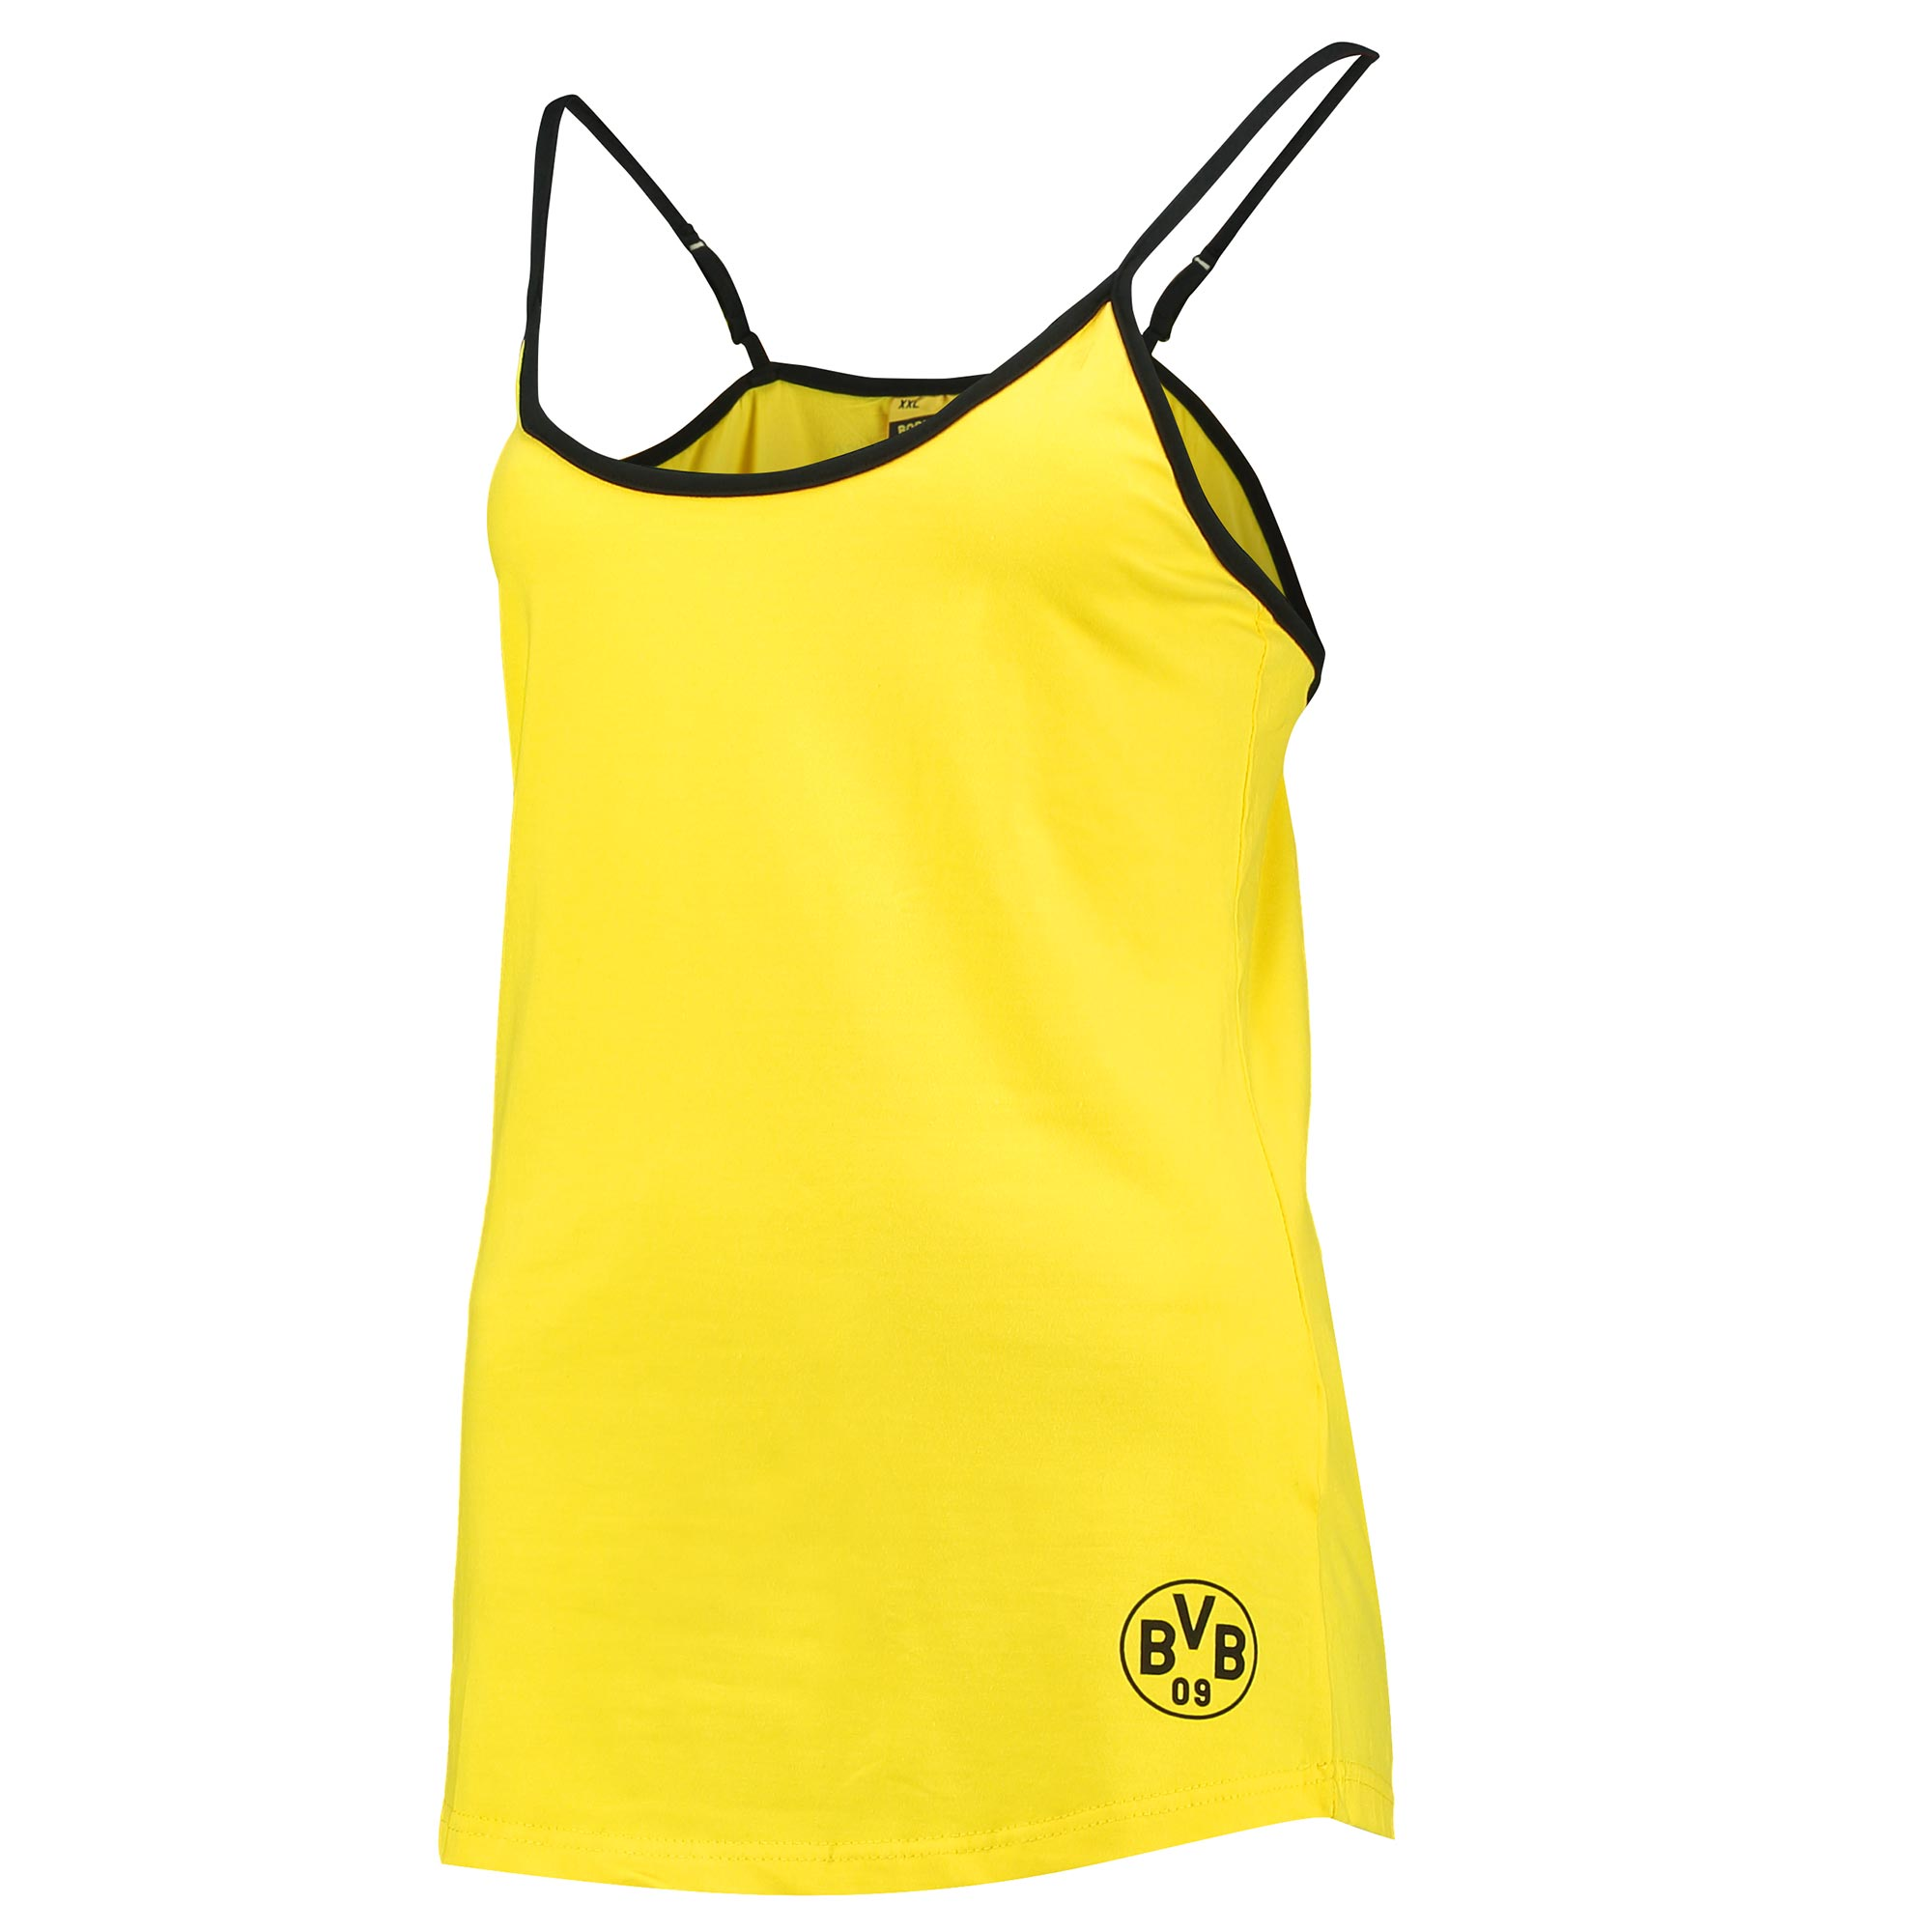 BVB Vest Top – Yellow – Womens